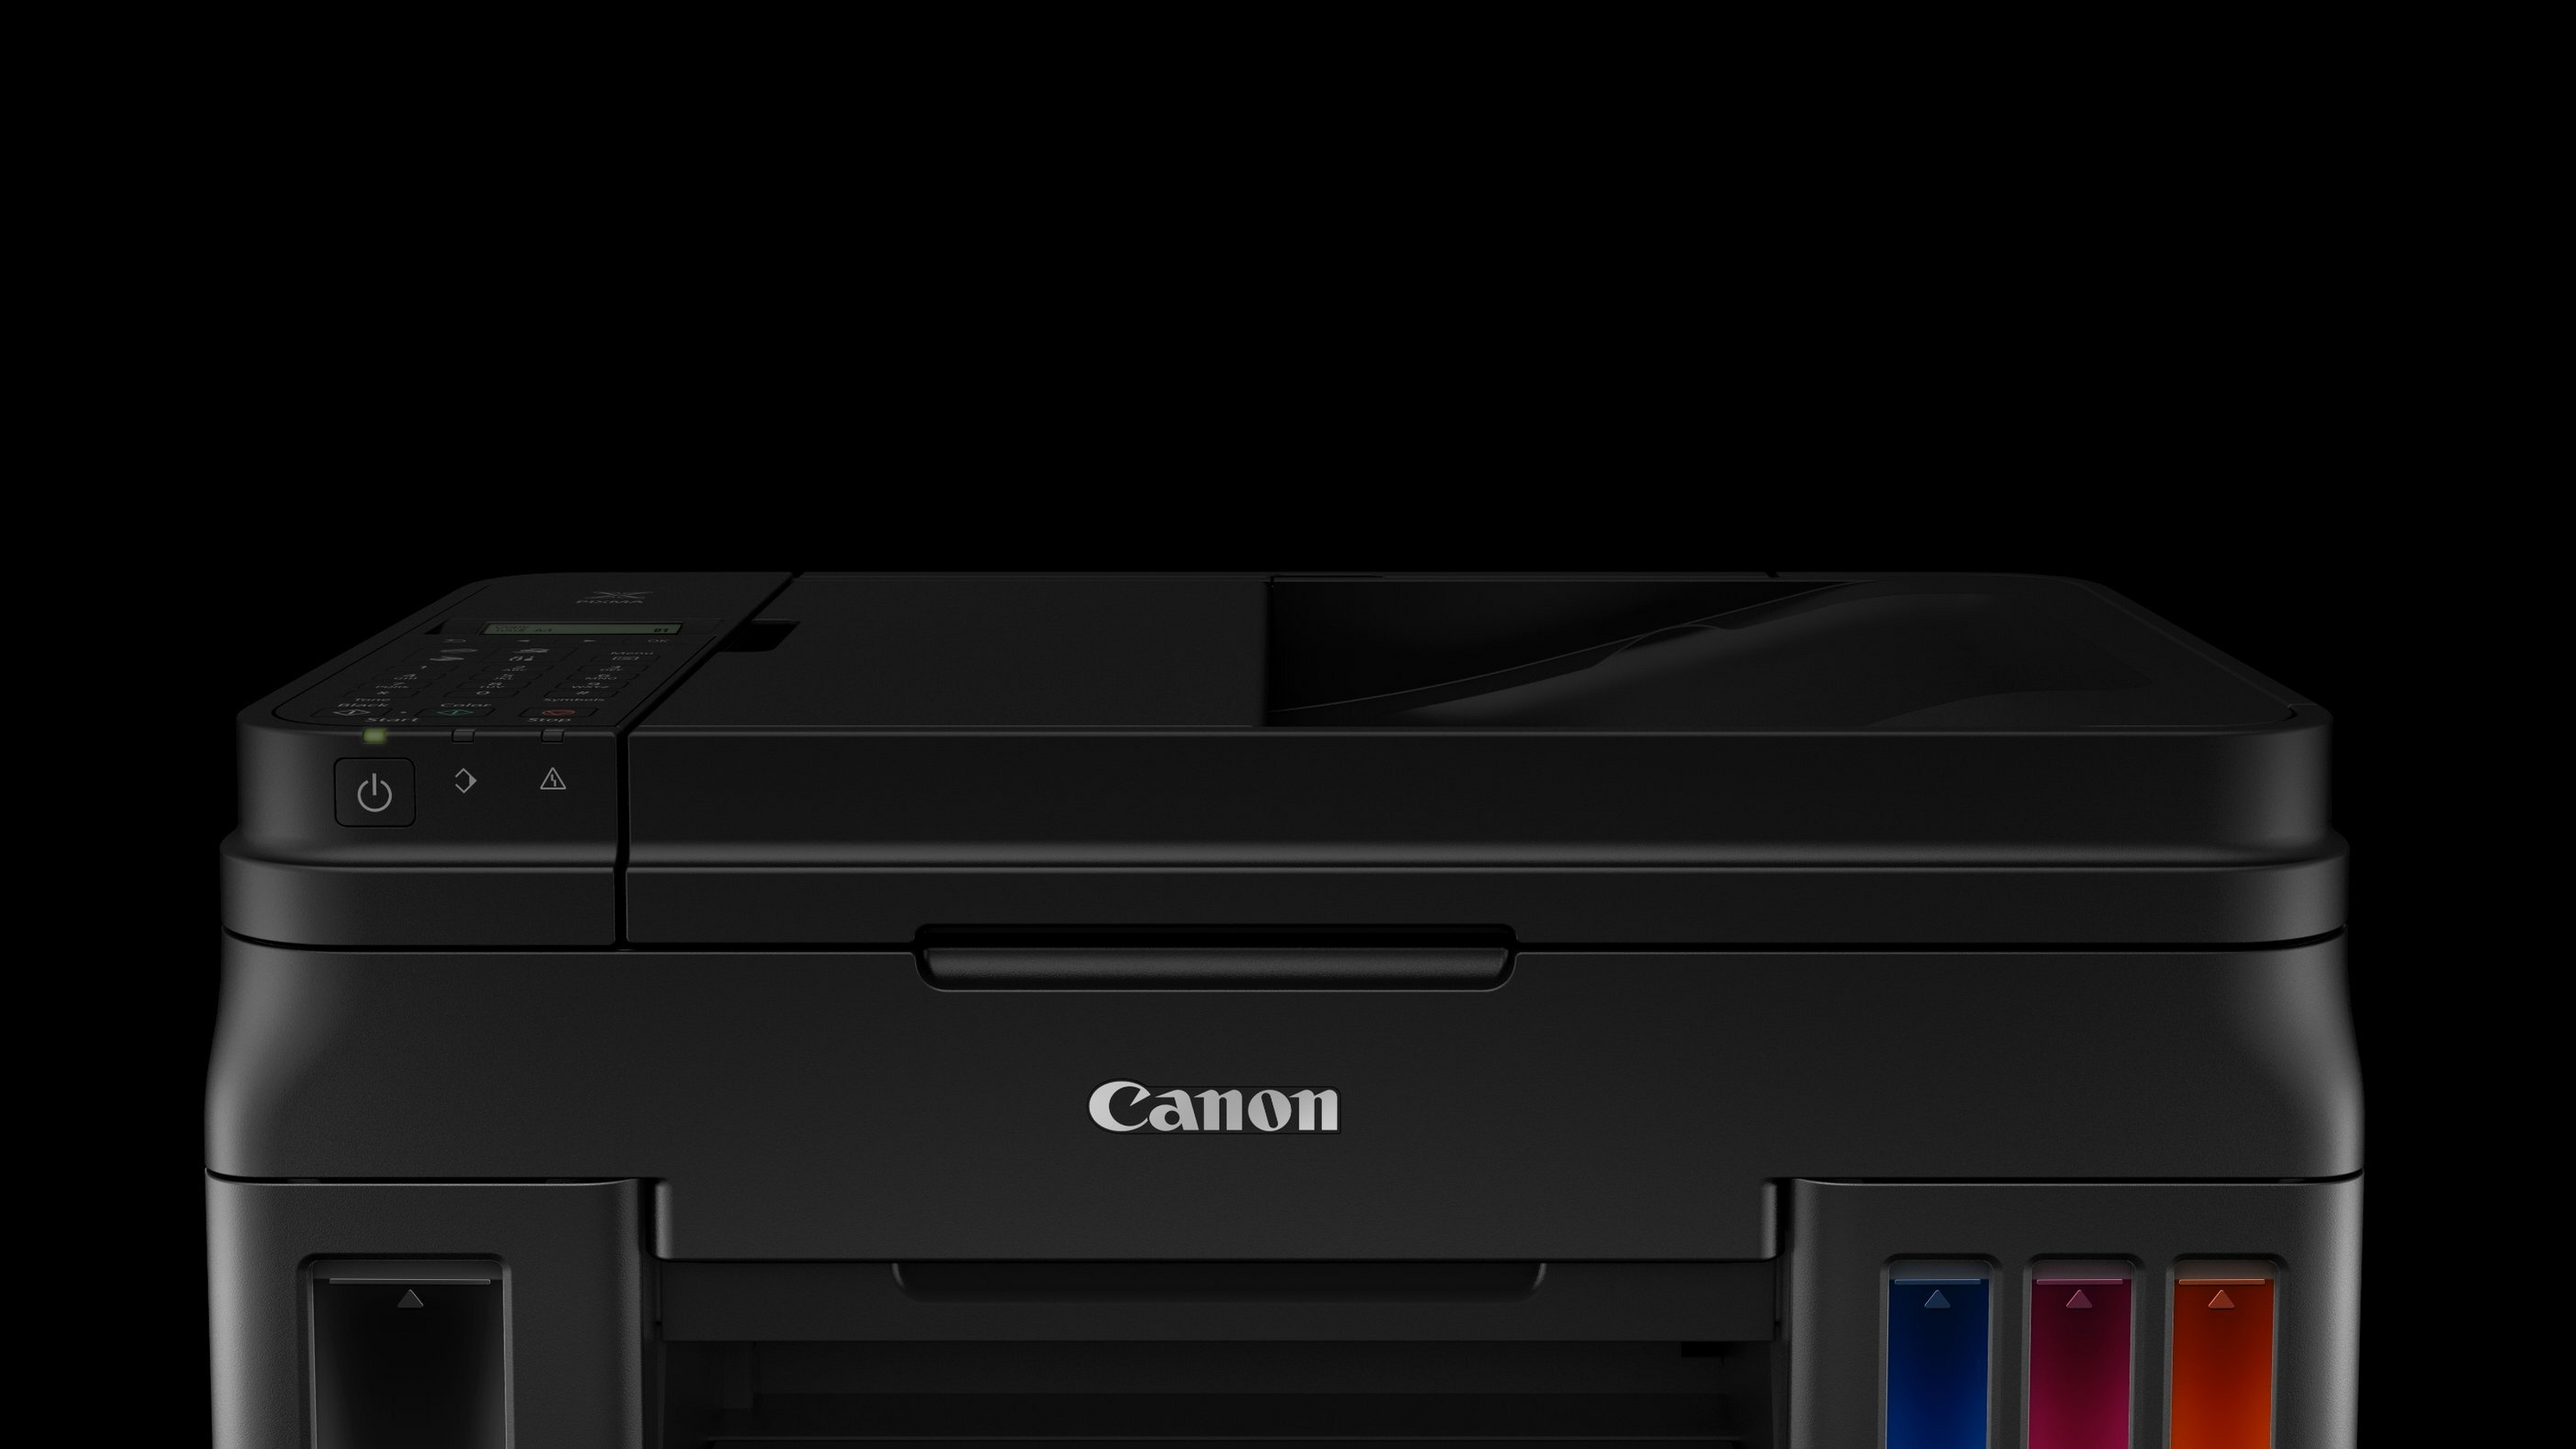 Do you need help finding a printer?